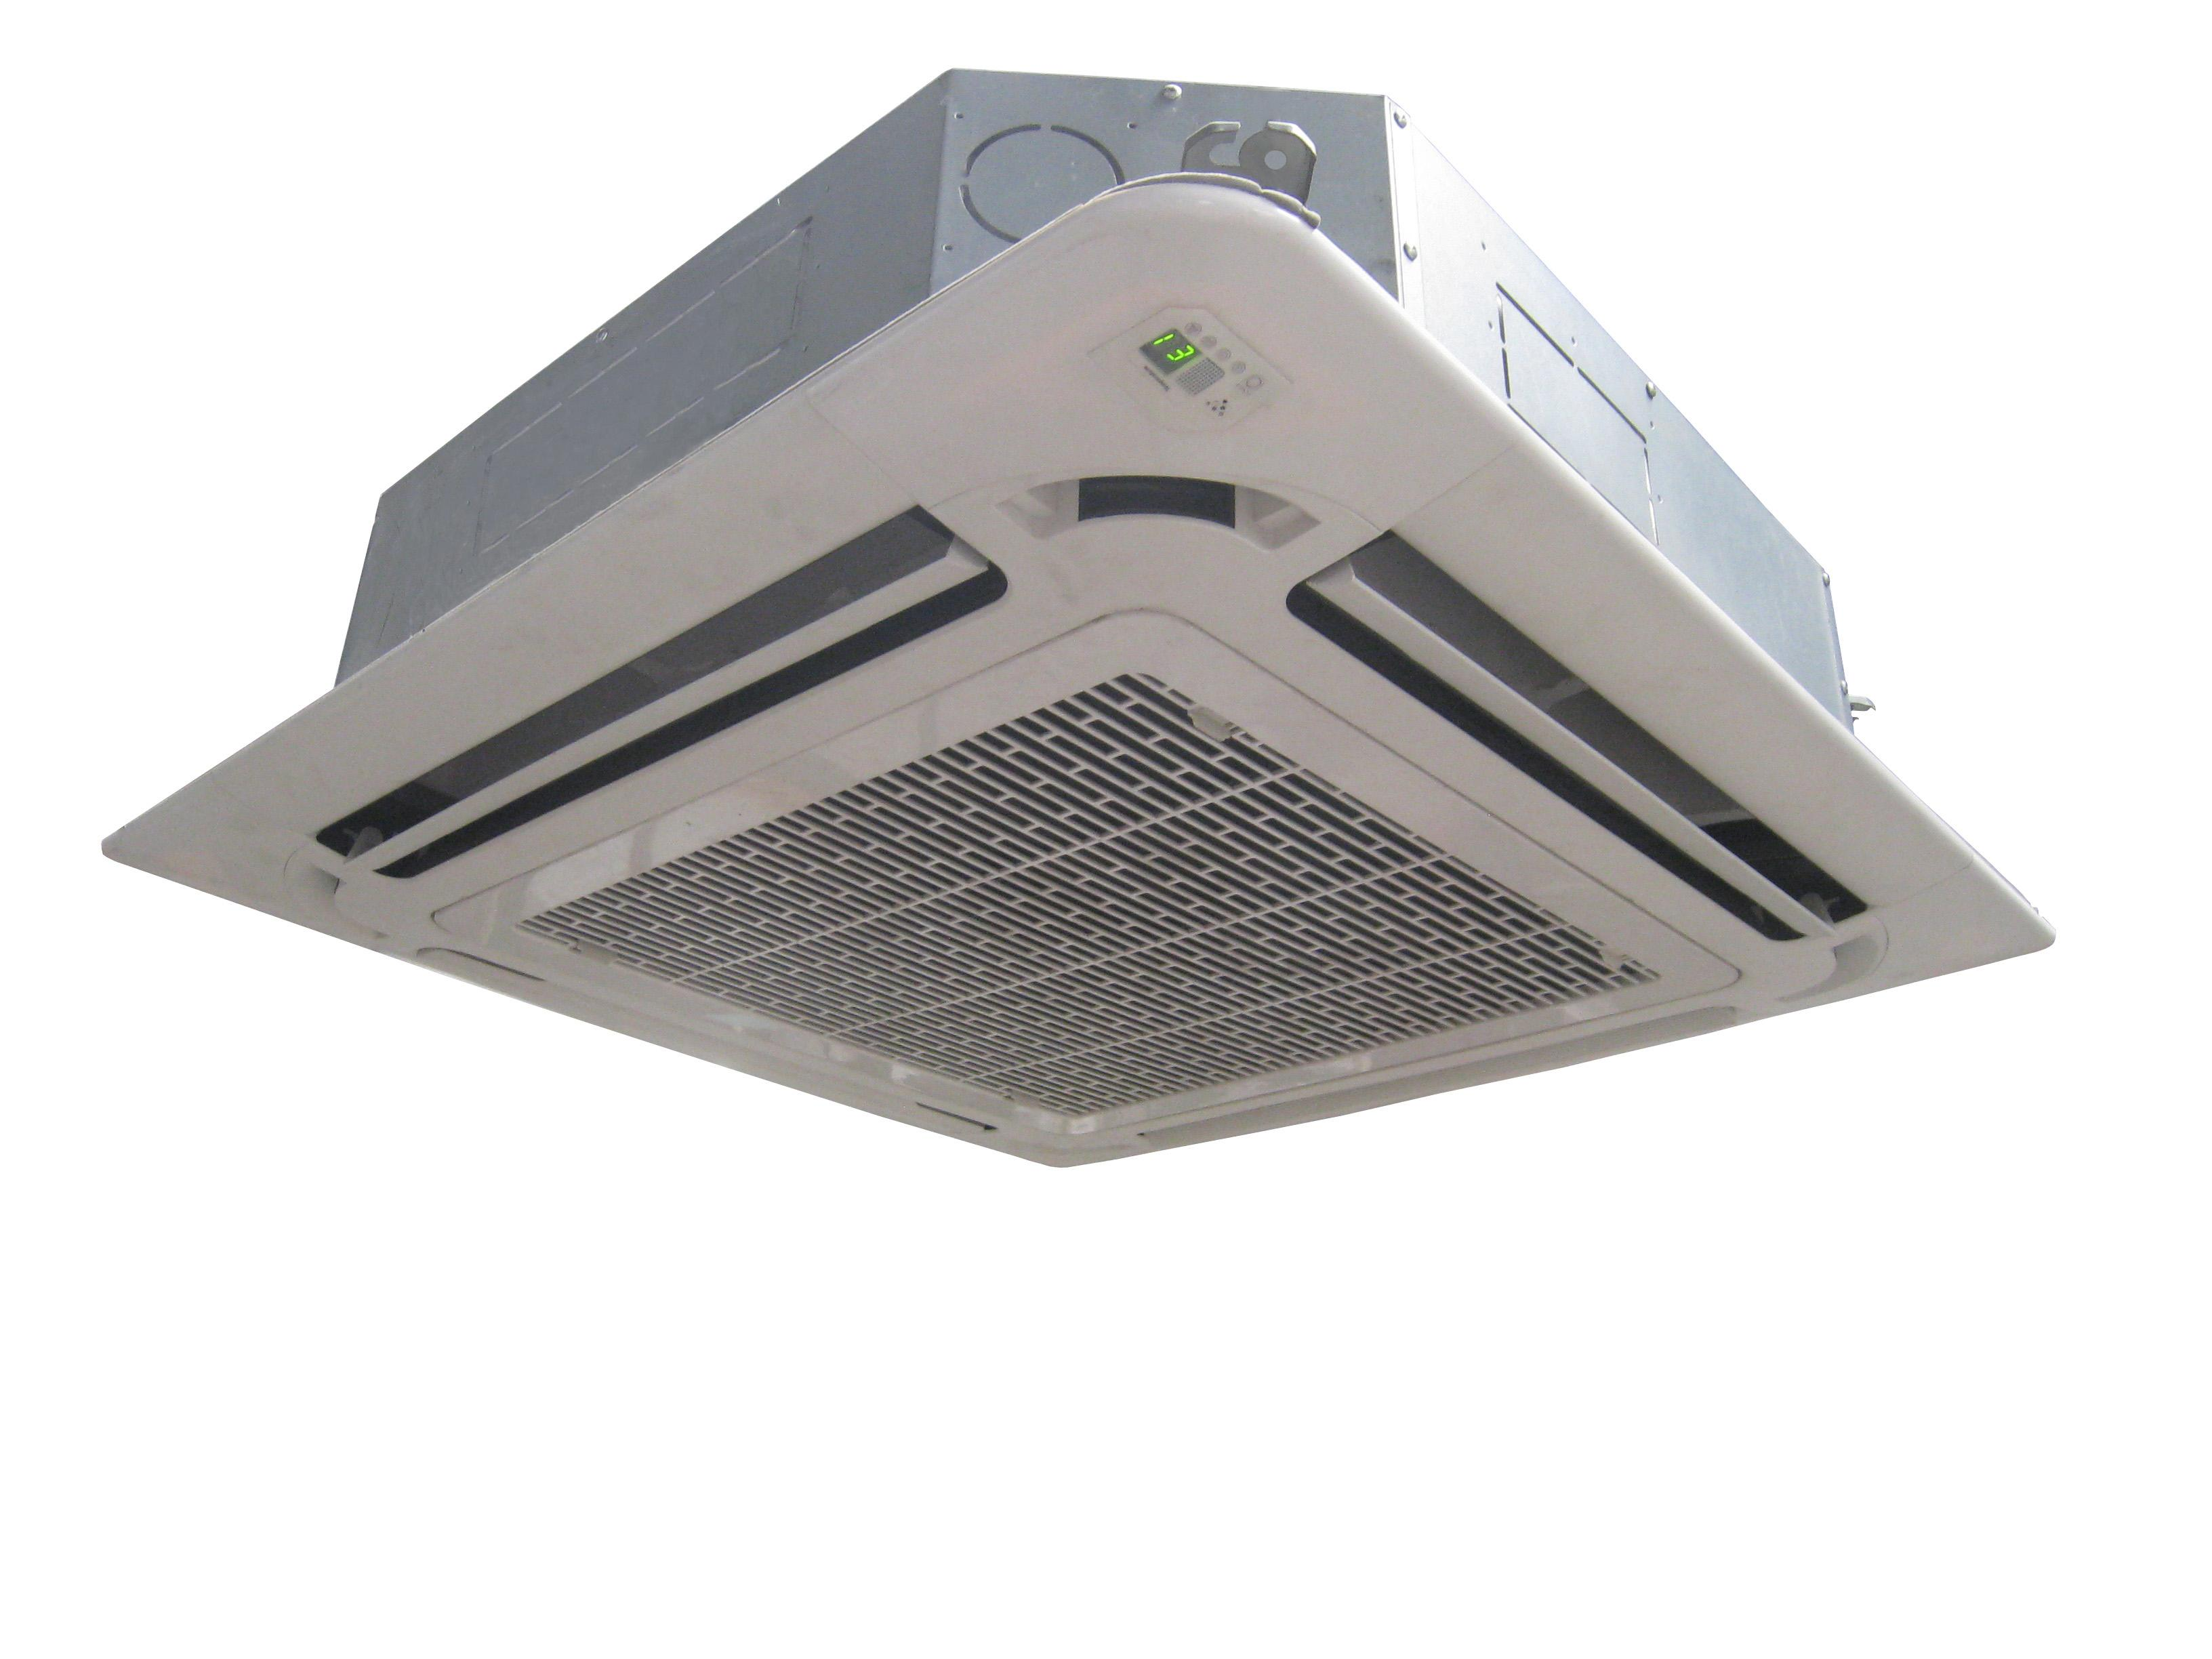 Cassette Air Conditioner: Features and Specifications